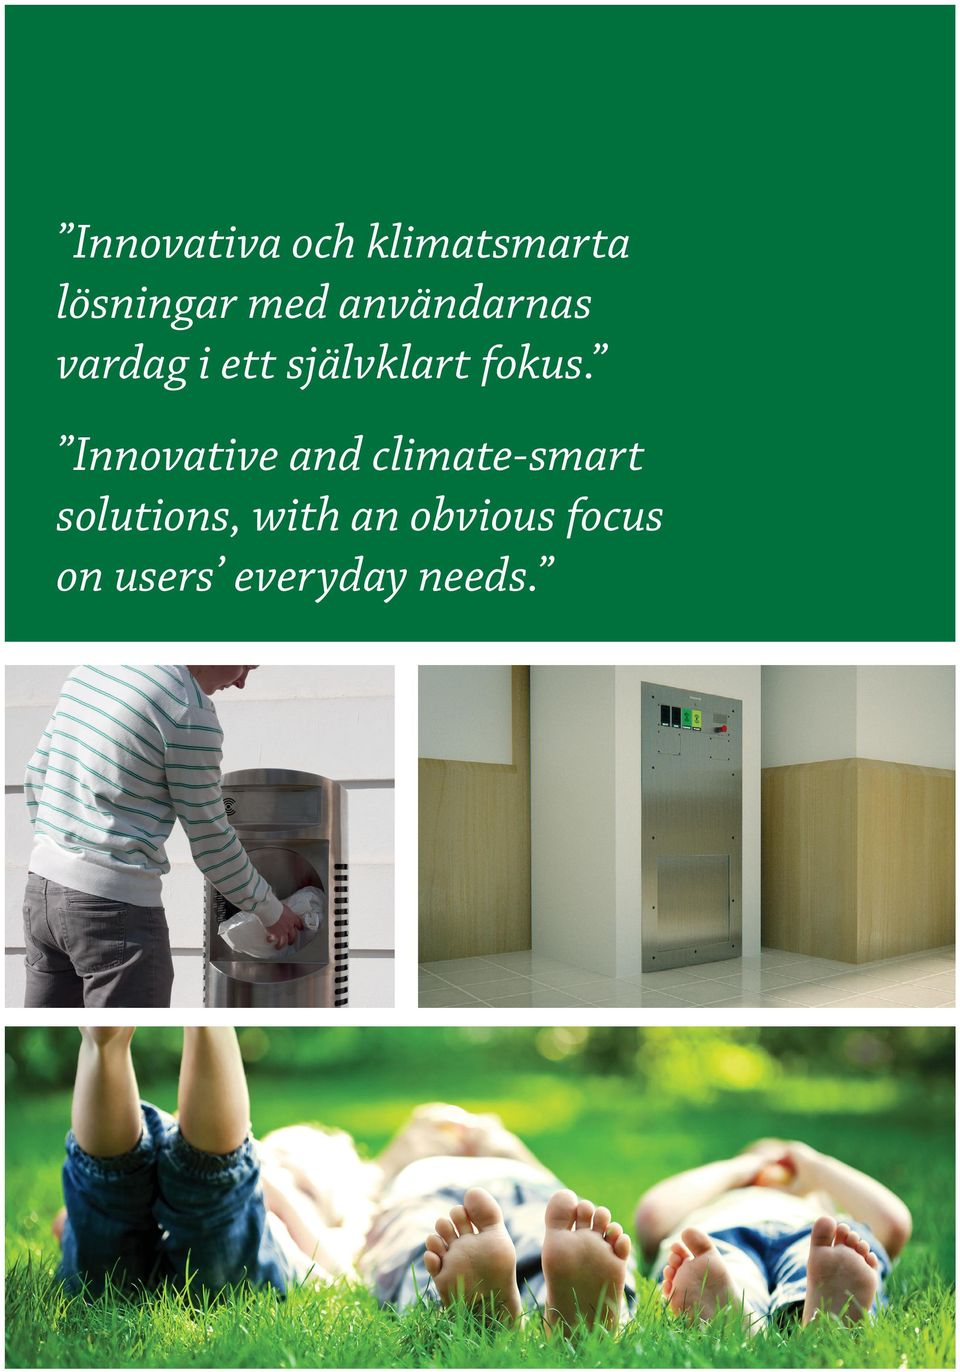 Innovative and climate-smart solutions,